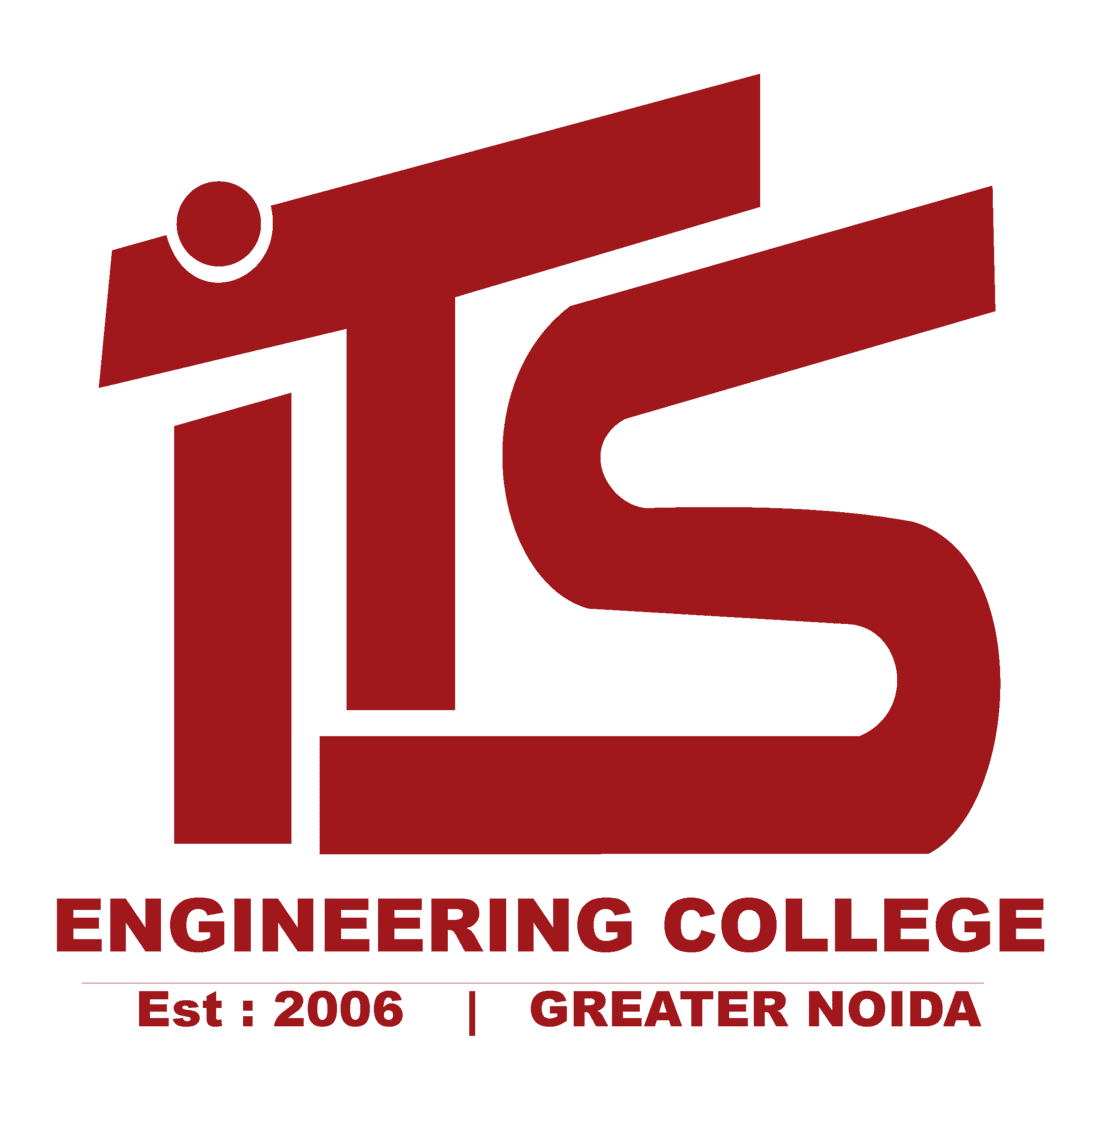 ITS Engg college conference 2020